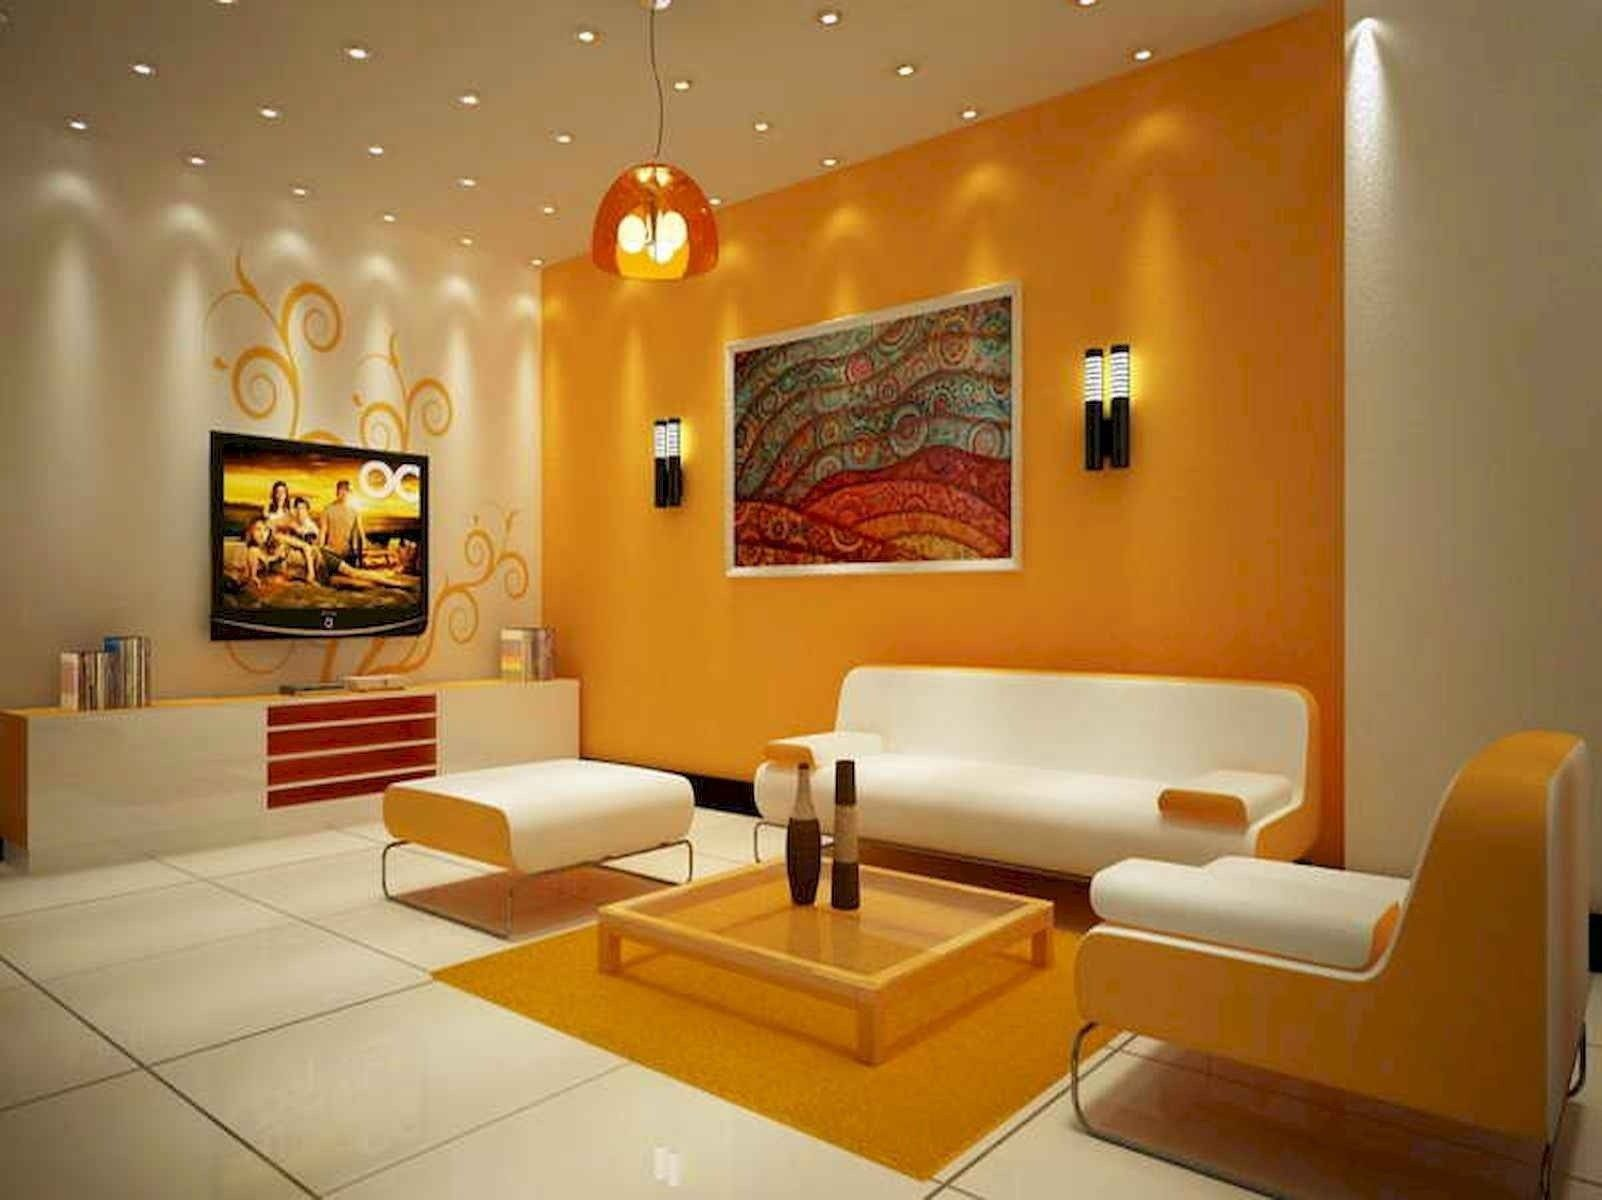 40 Awesome Wall Painting Ideas For Home In 2020 Living Room Orange Orange Living Room Walls Living Room Colors